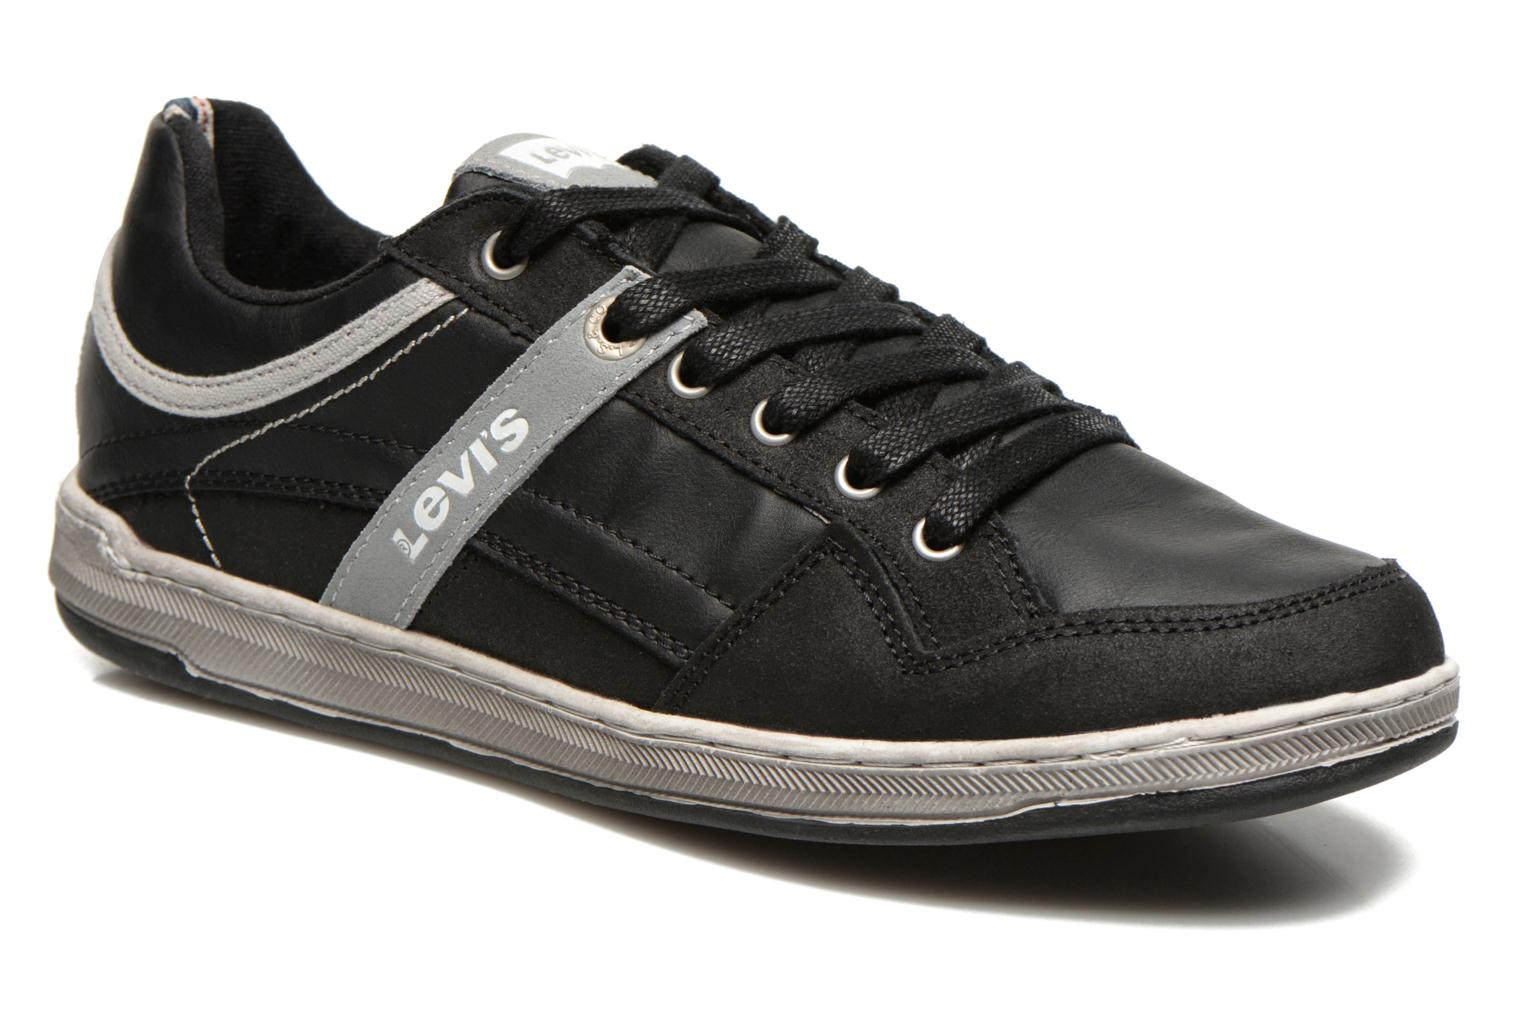 Sneakers Pinole Low by Levi's